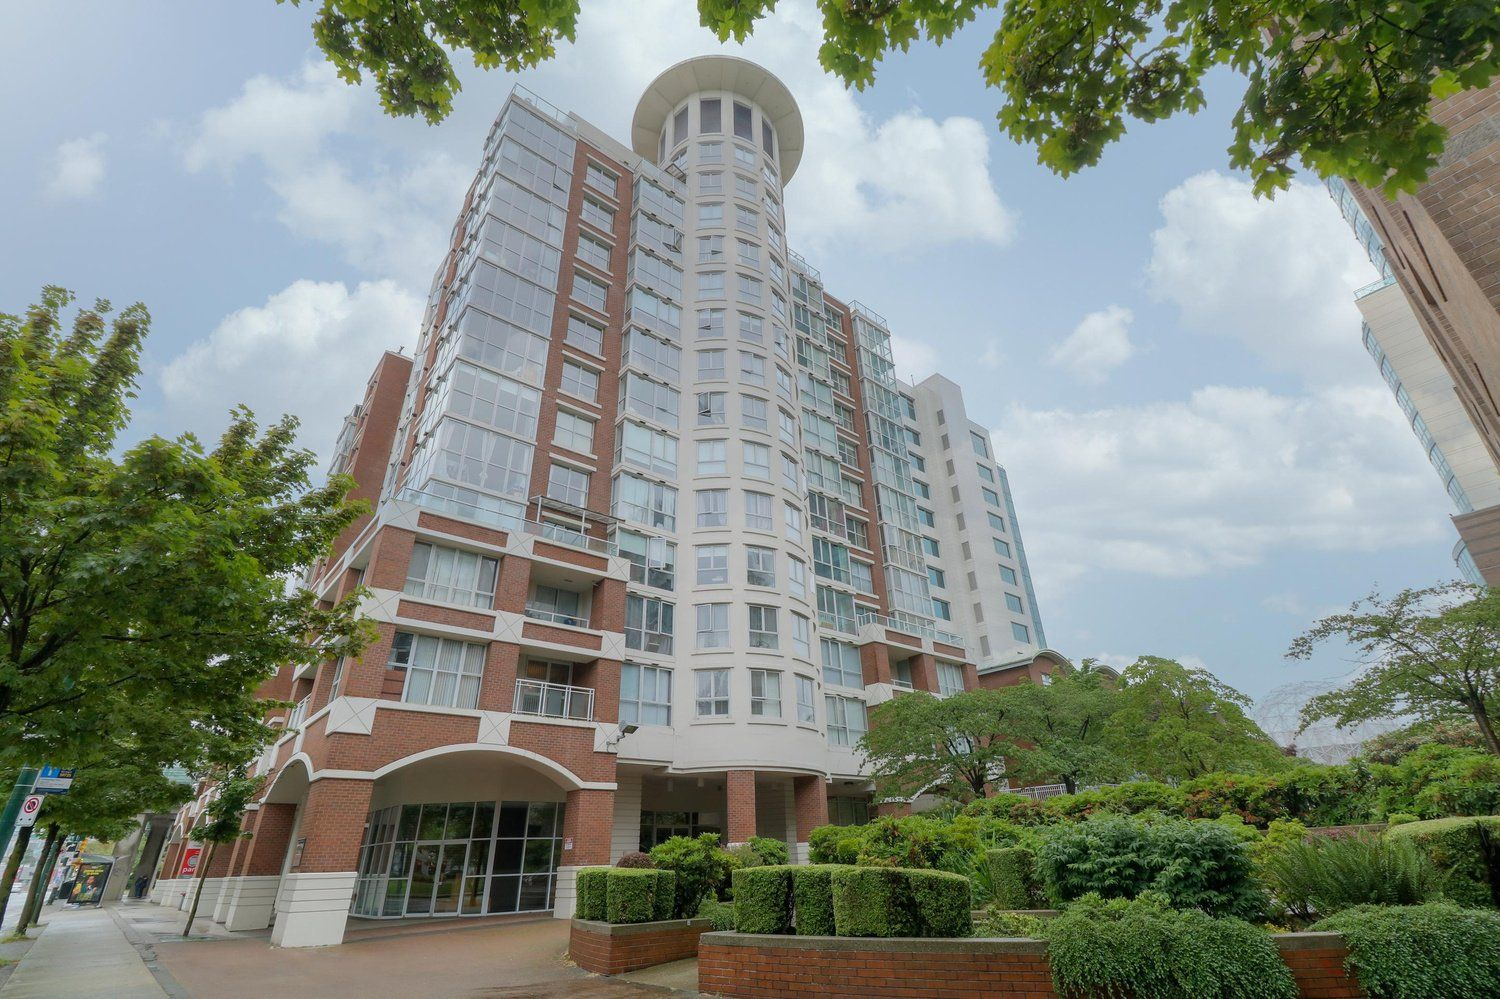 """Main Photo: 1201 1255 MAIN Street in Vancouver: Downtown VE Condo for sale in """"STATION PLACE"""" (Vancouver East)  : MLS®# R2464428"""